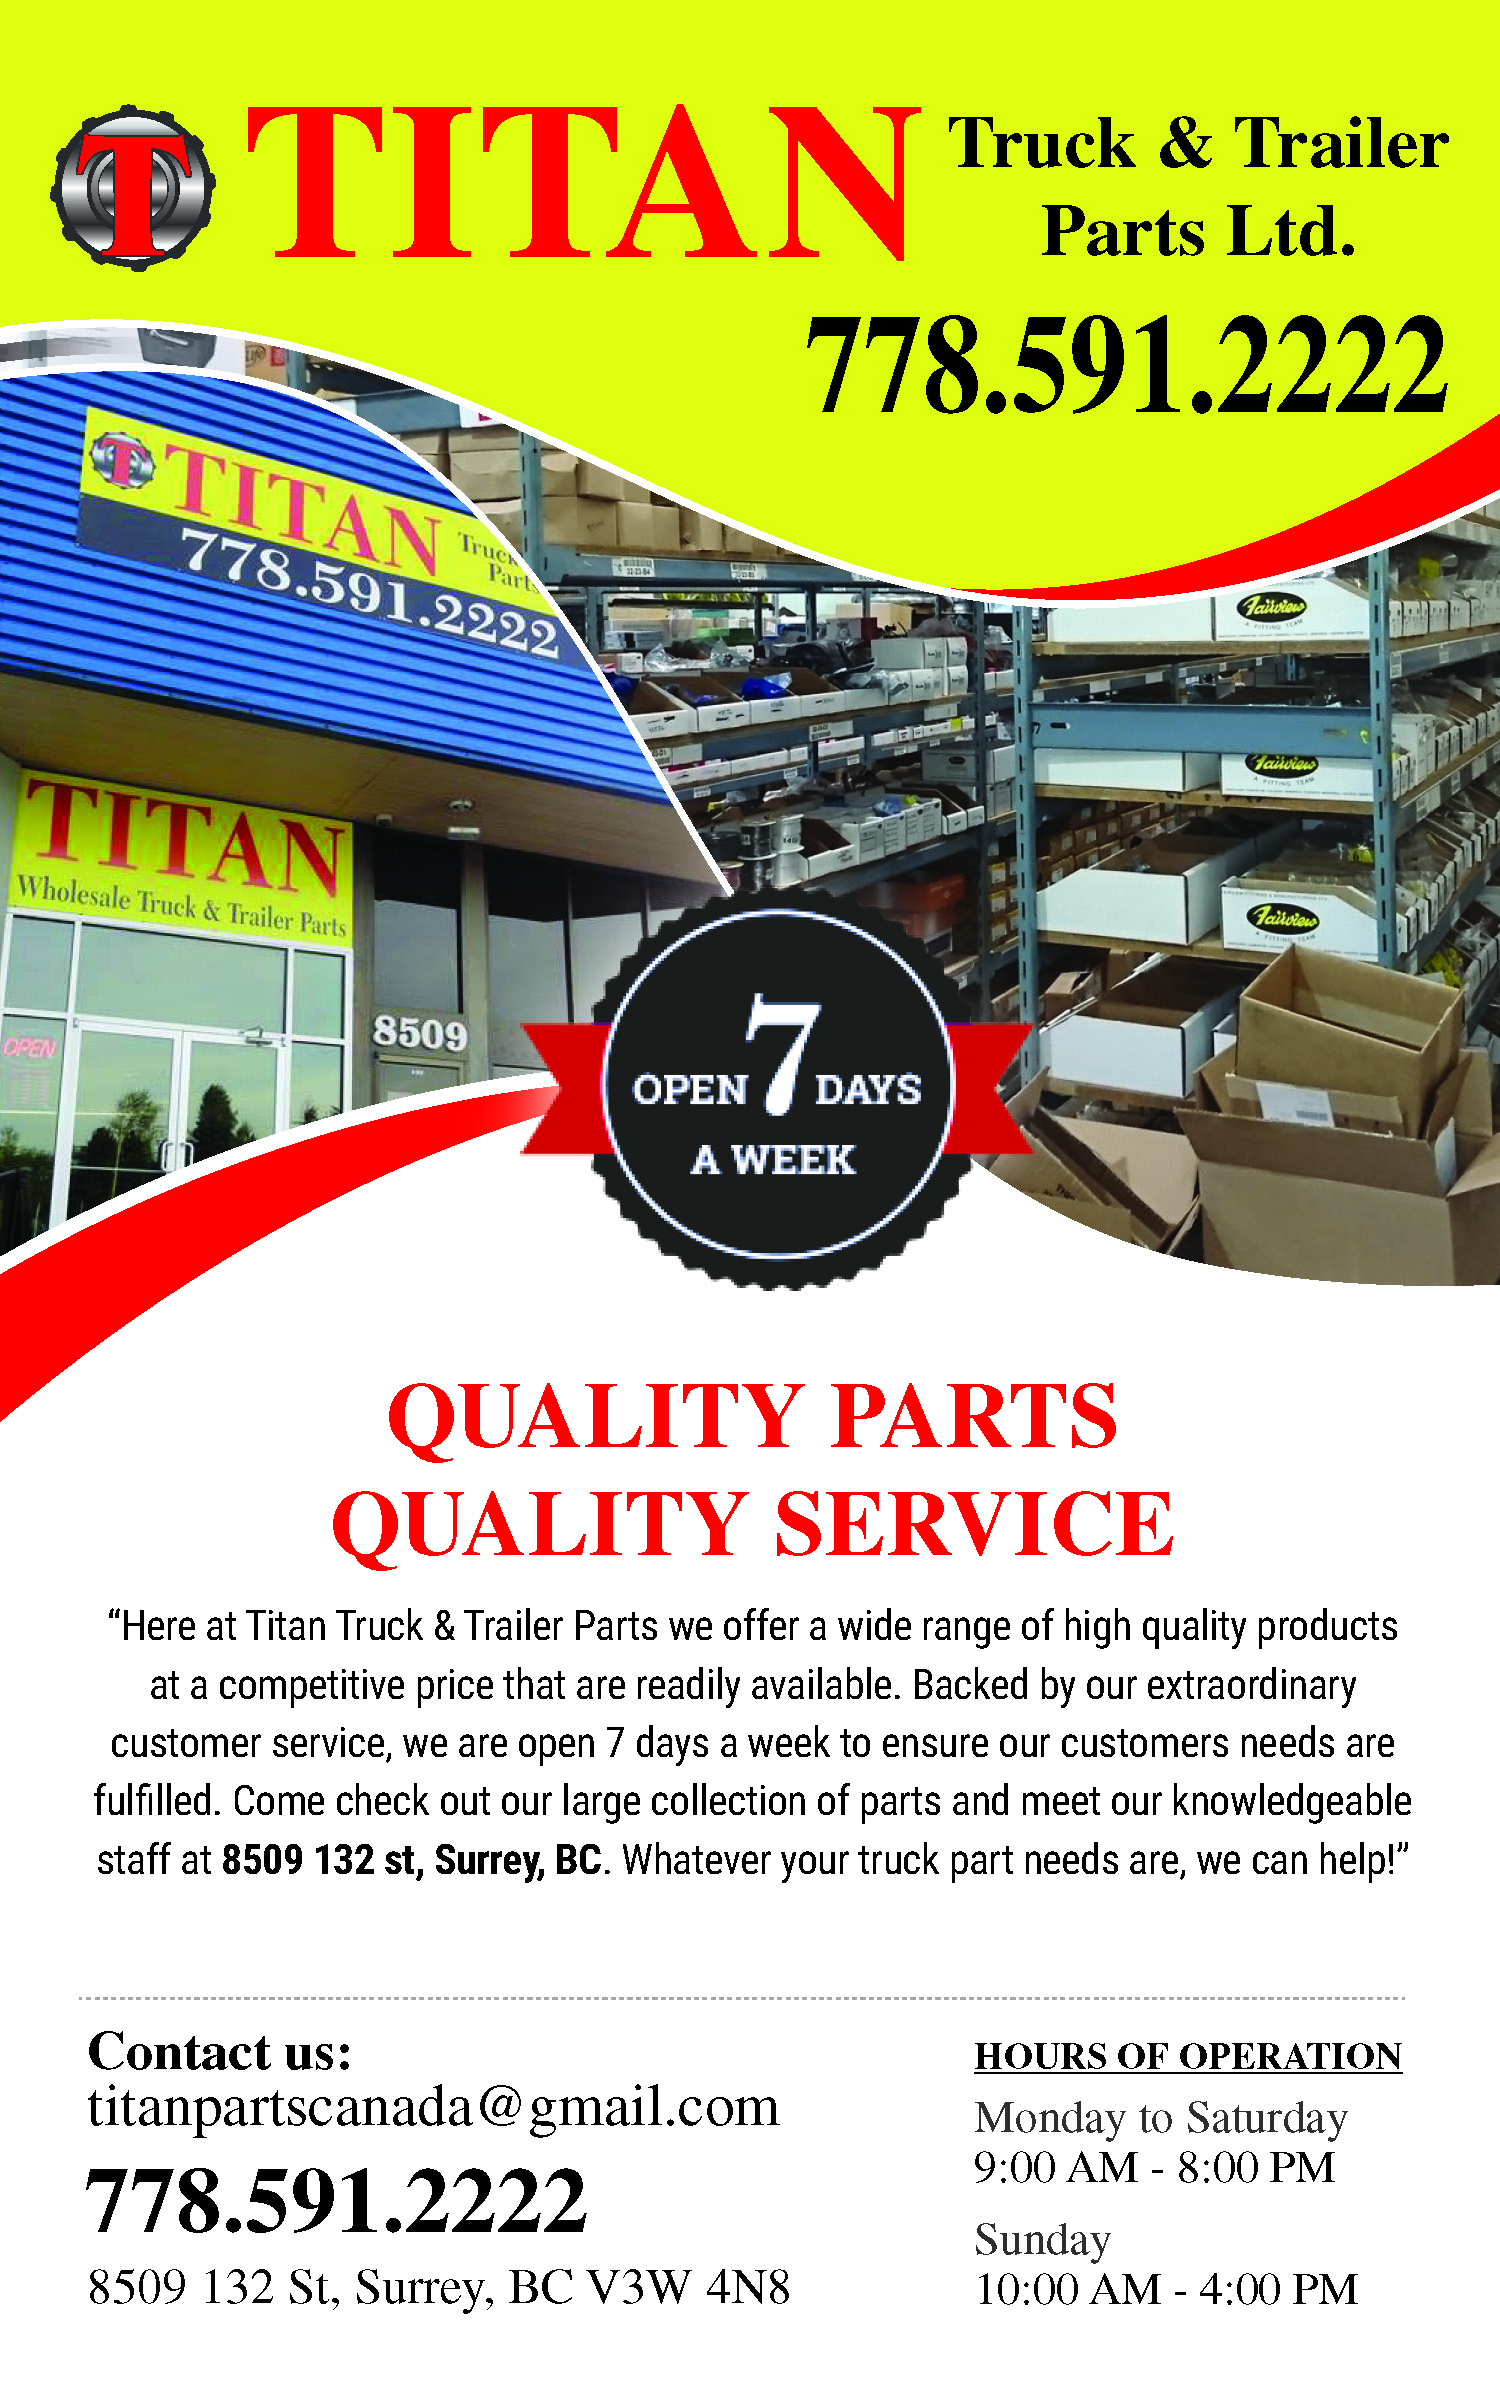 titan-truck-trailer-parts-ltd-Wmh5VUg.jpeg